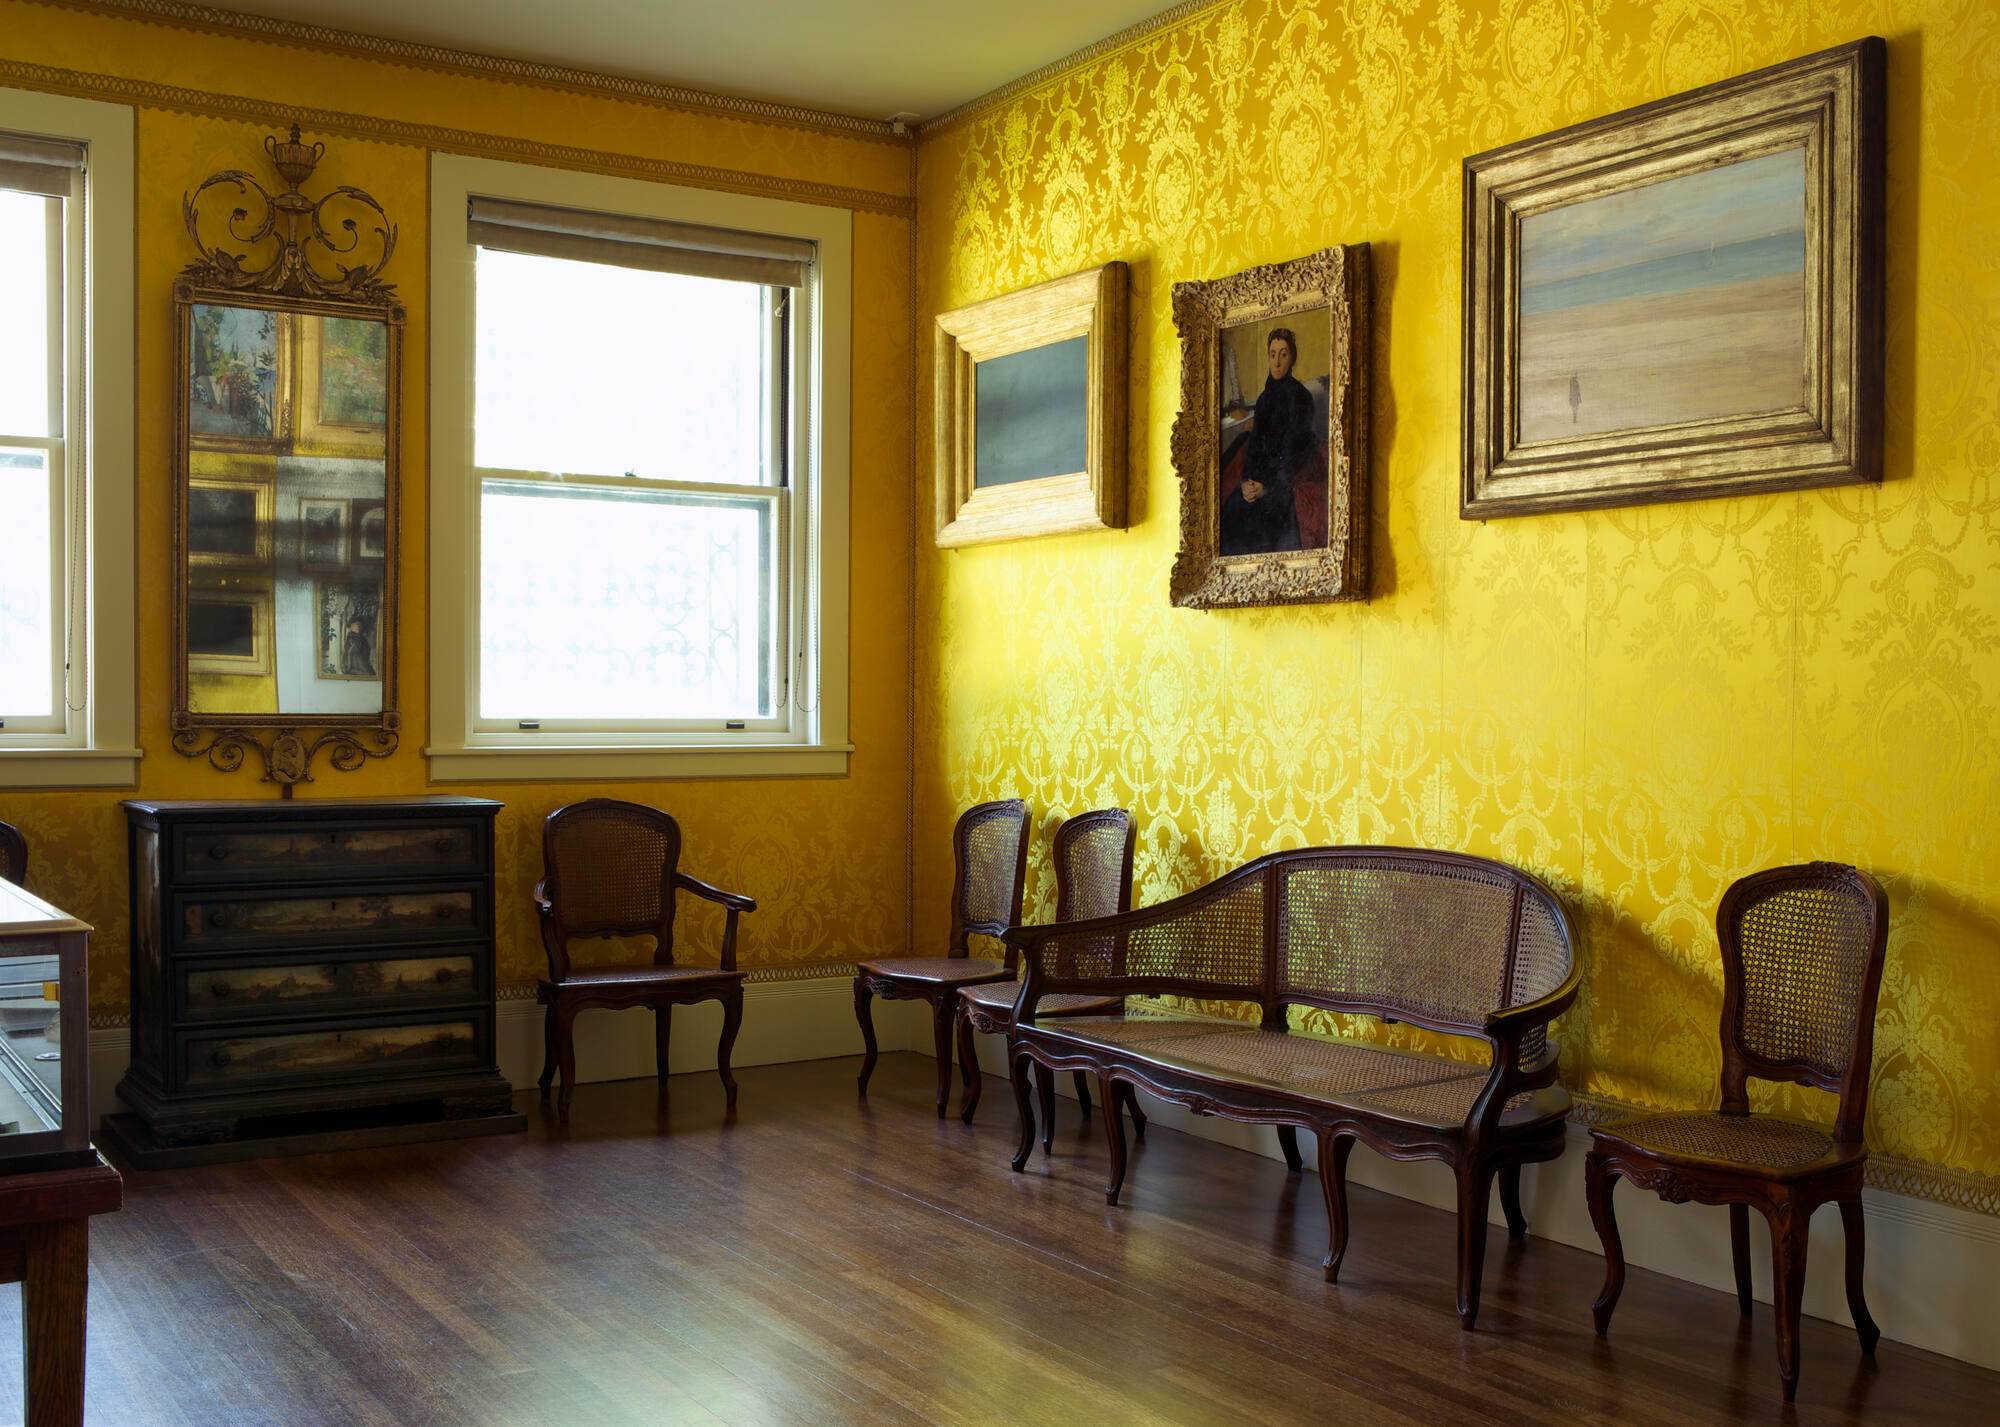 The yellow room.